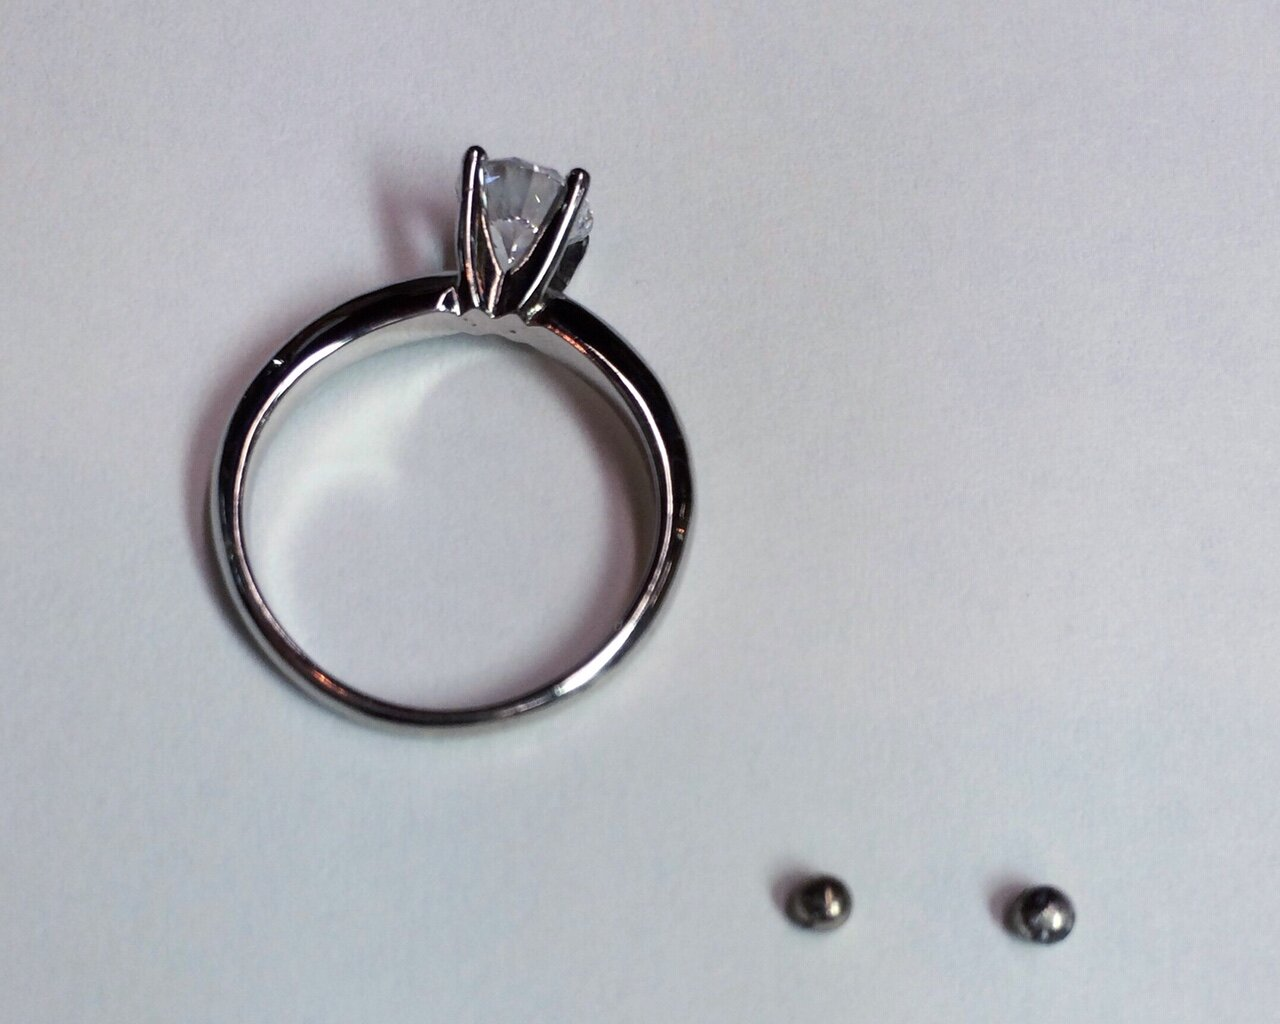 We are adding sizing balls to this classic solitaire setting.